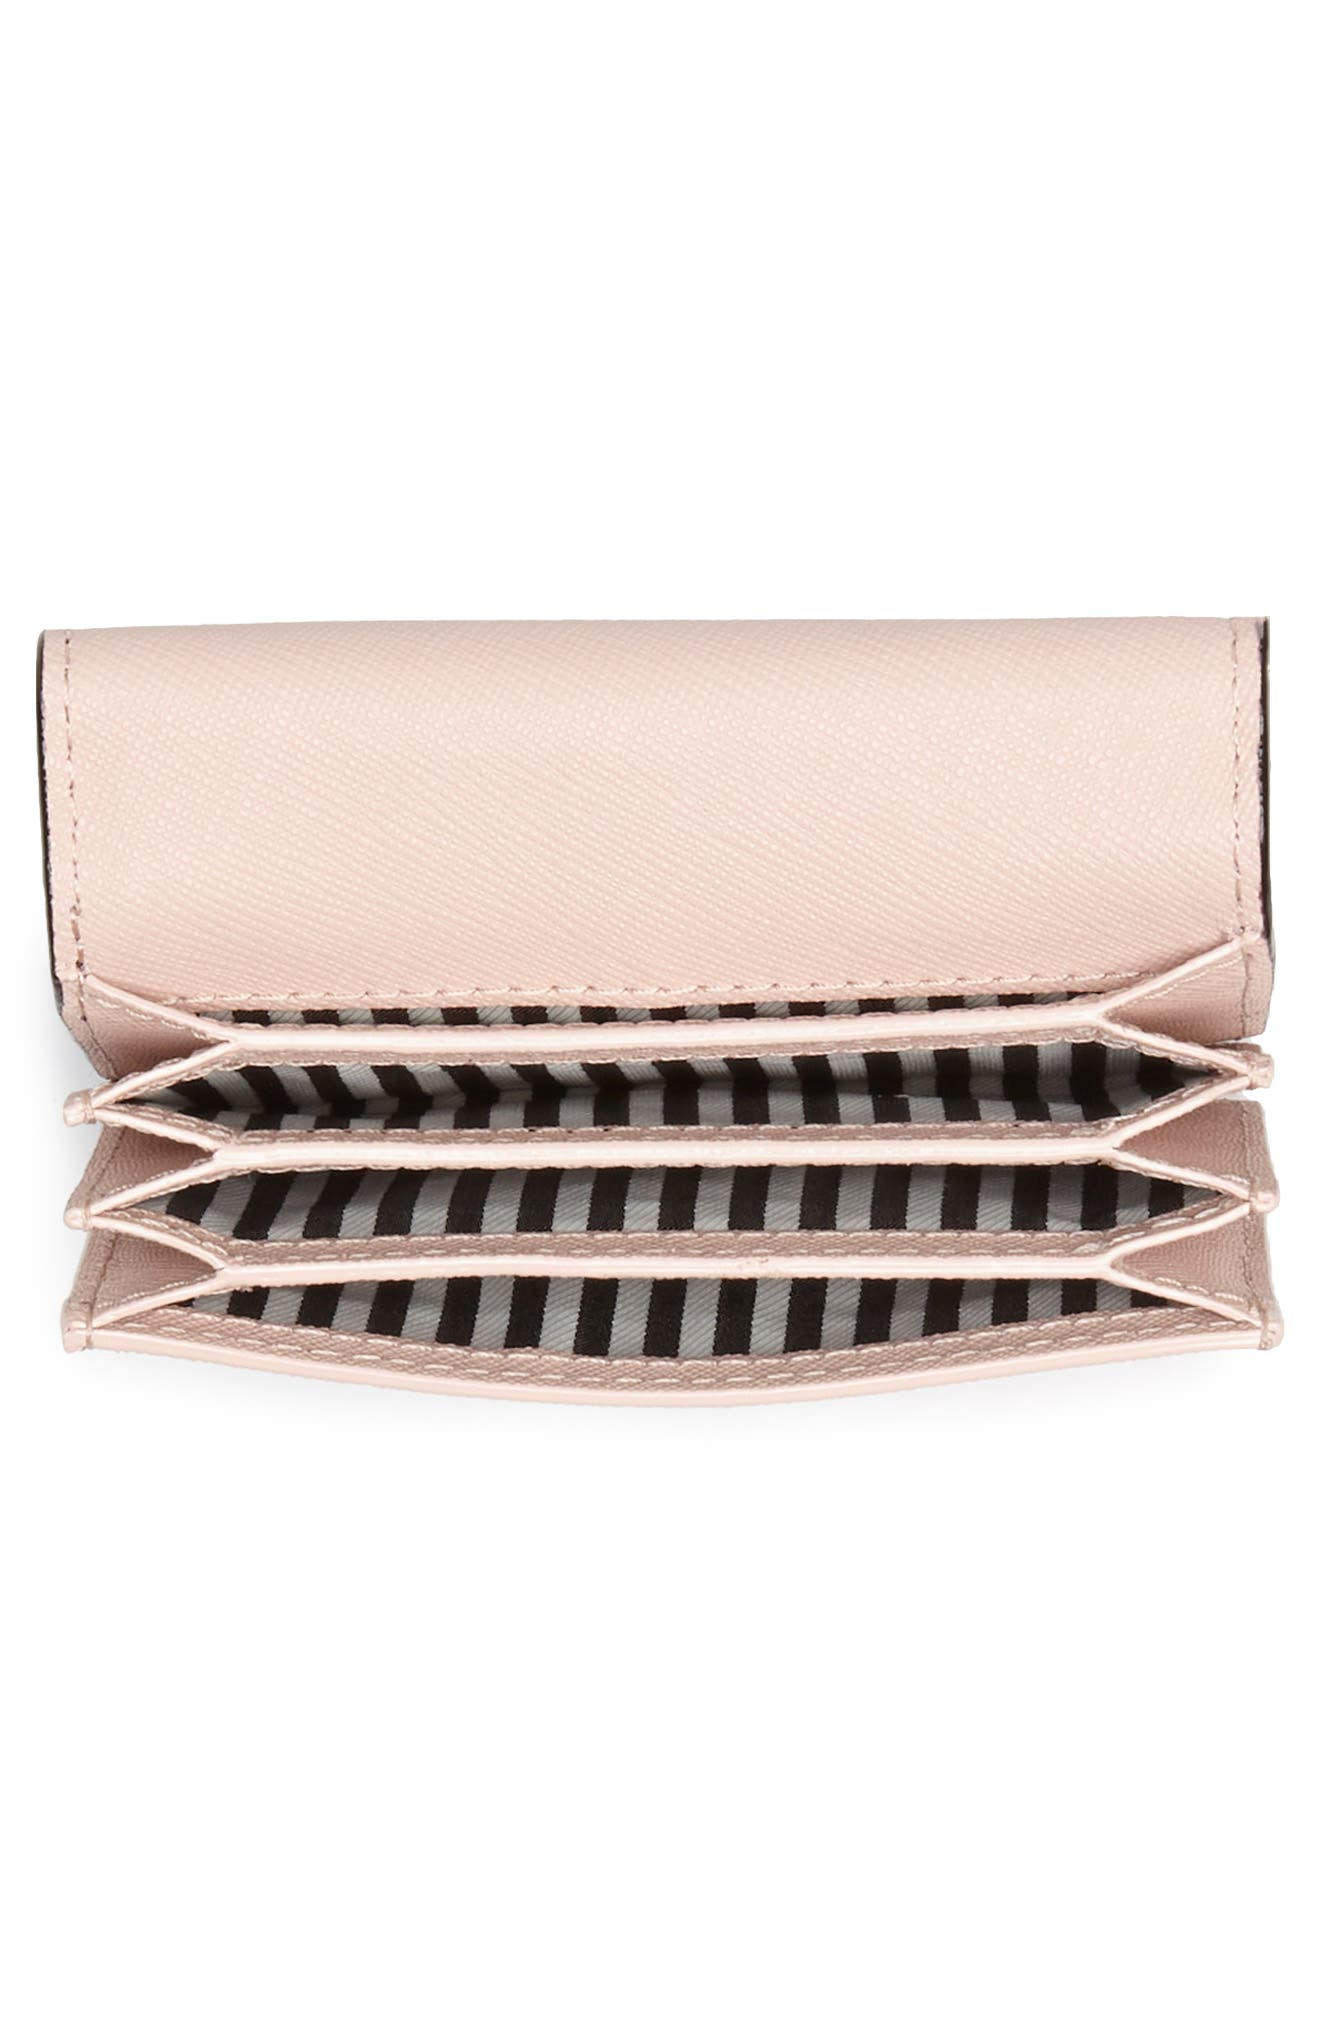 cameron street - annabella accordioned card case,                             Alternate thumbnail 2, color,                             001